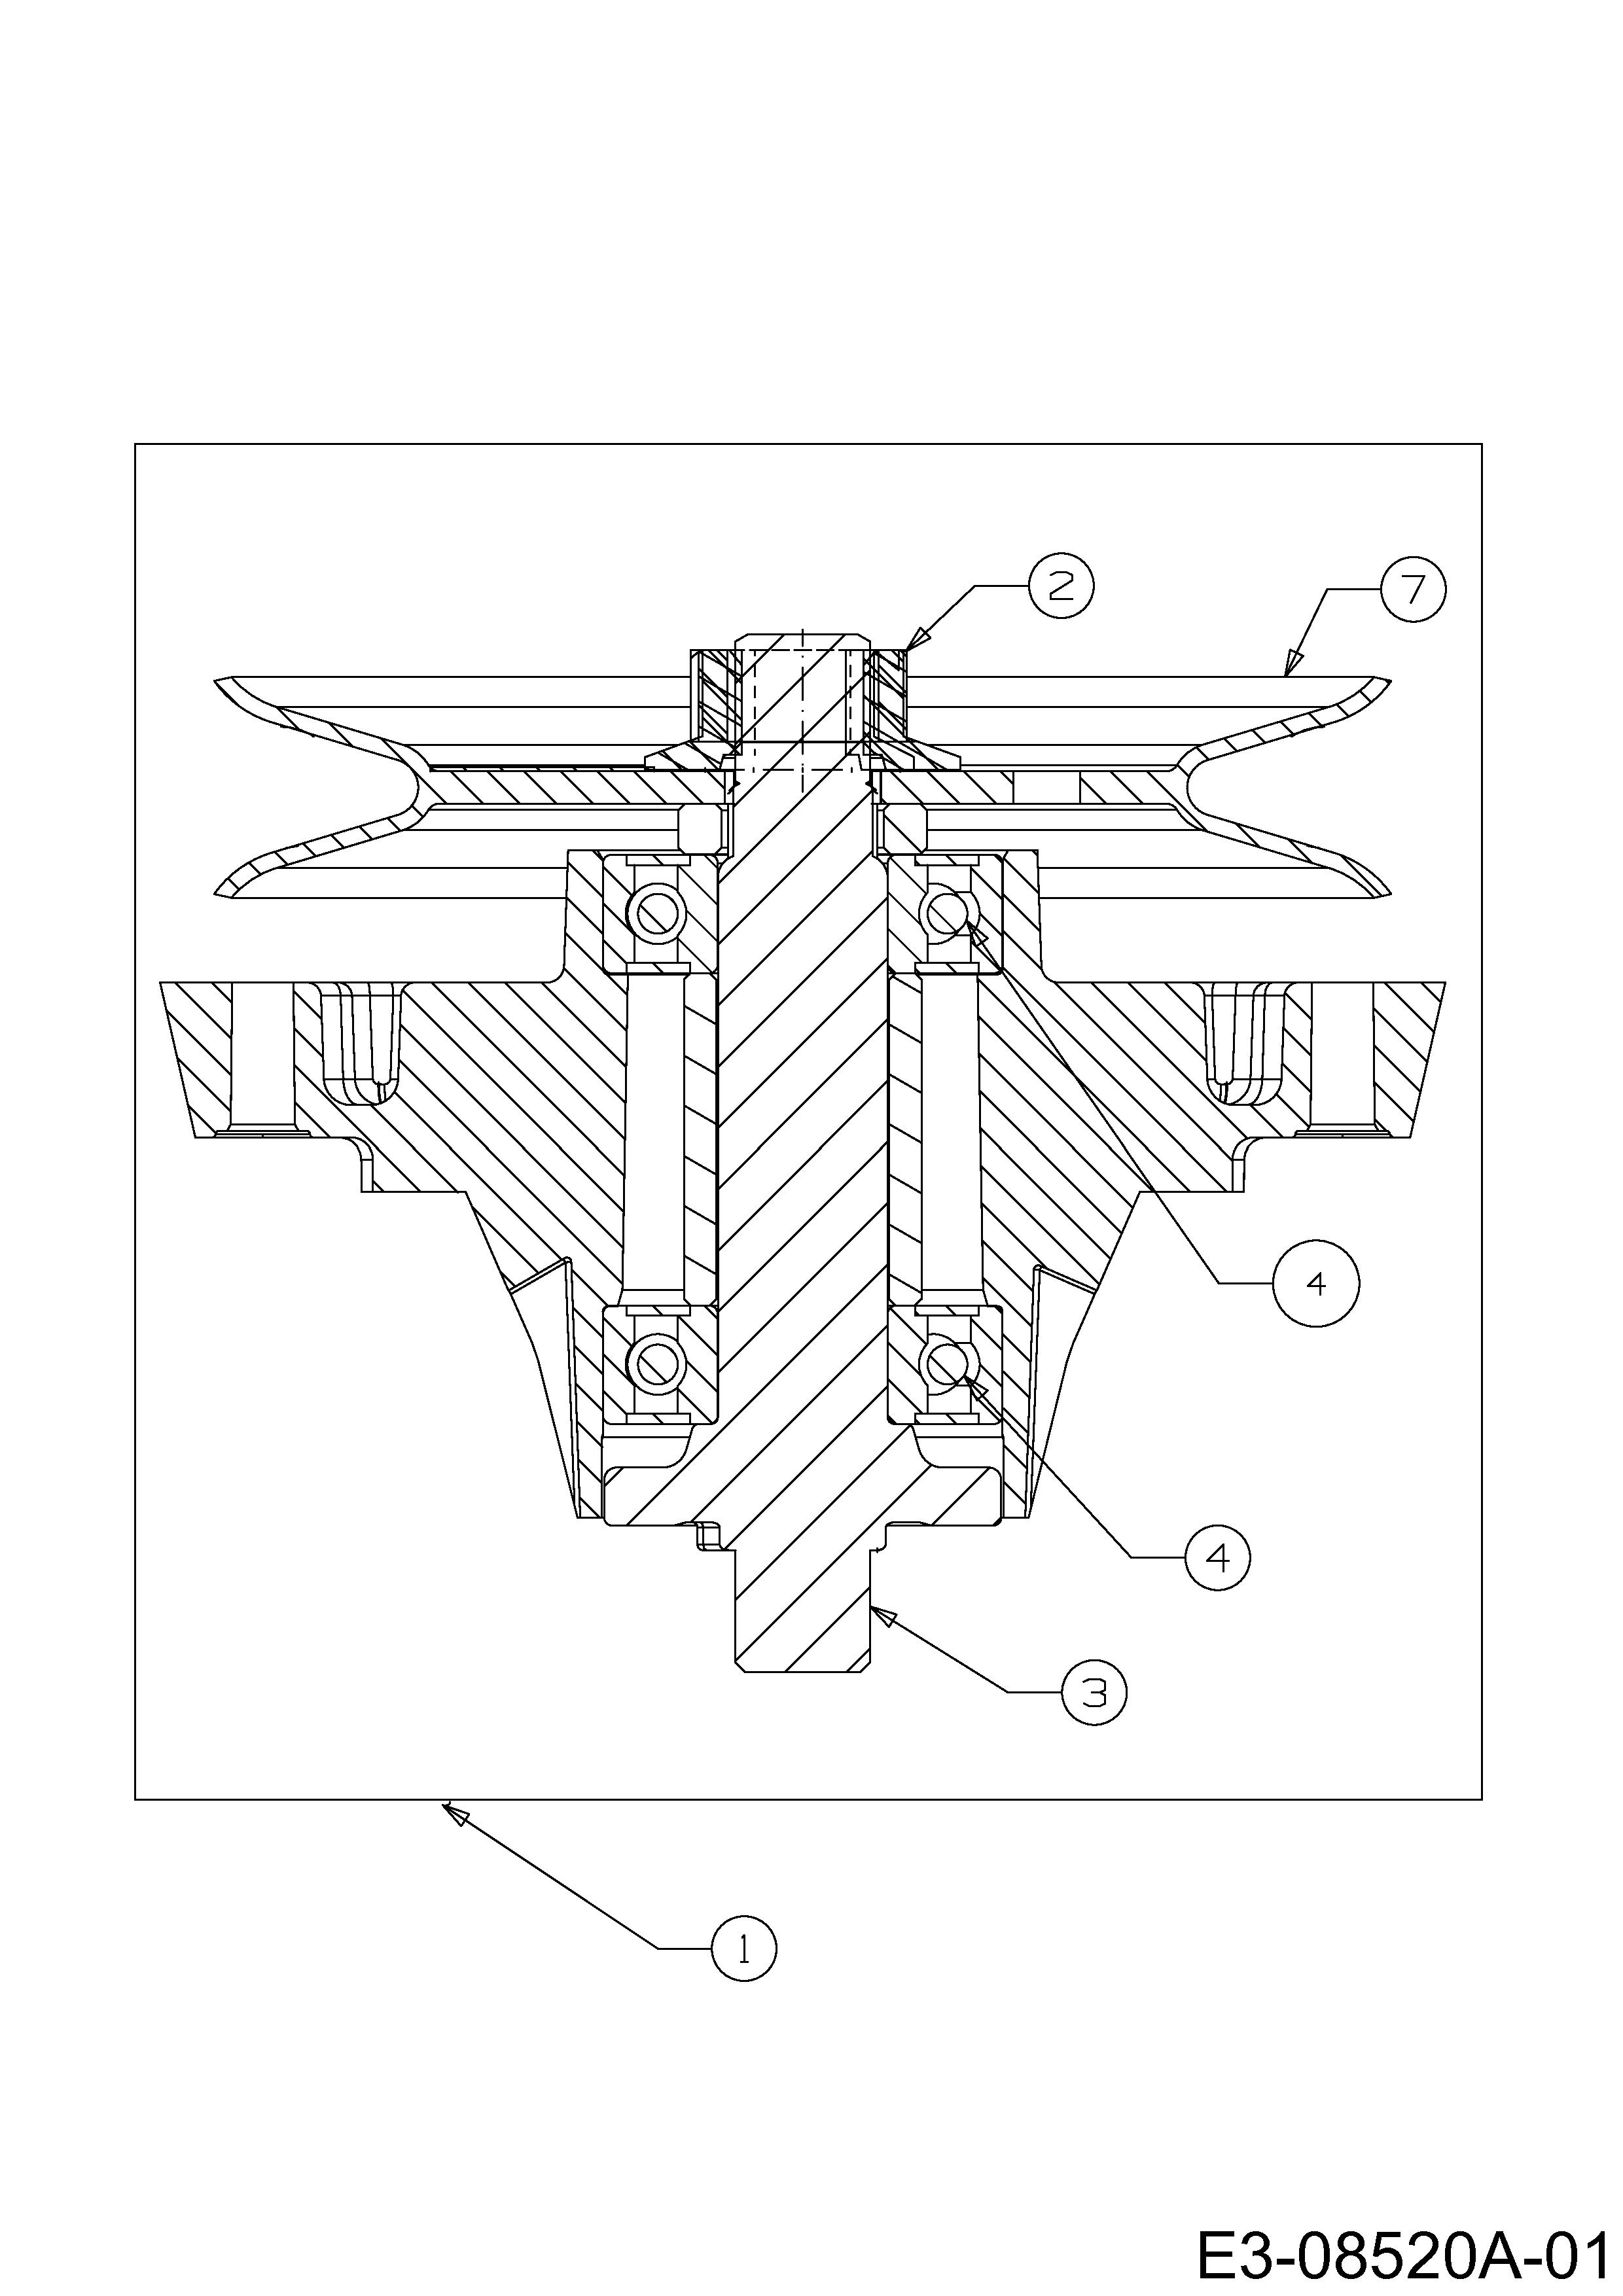 electric choke plug electric wiring diagram, schematic diagram Electric Choke Wiring Diagram valve further holley ignition wiring diagram additionally 13ap91ap330 2012 moreover super bronco 50 13wqa2kq011 2017 furthermore electric choke wiring diagram